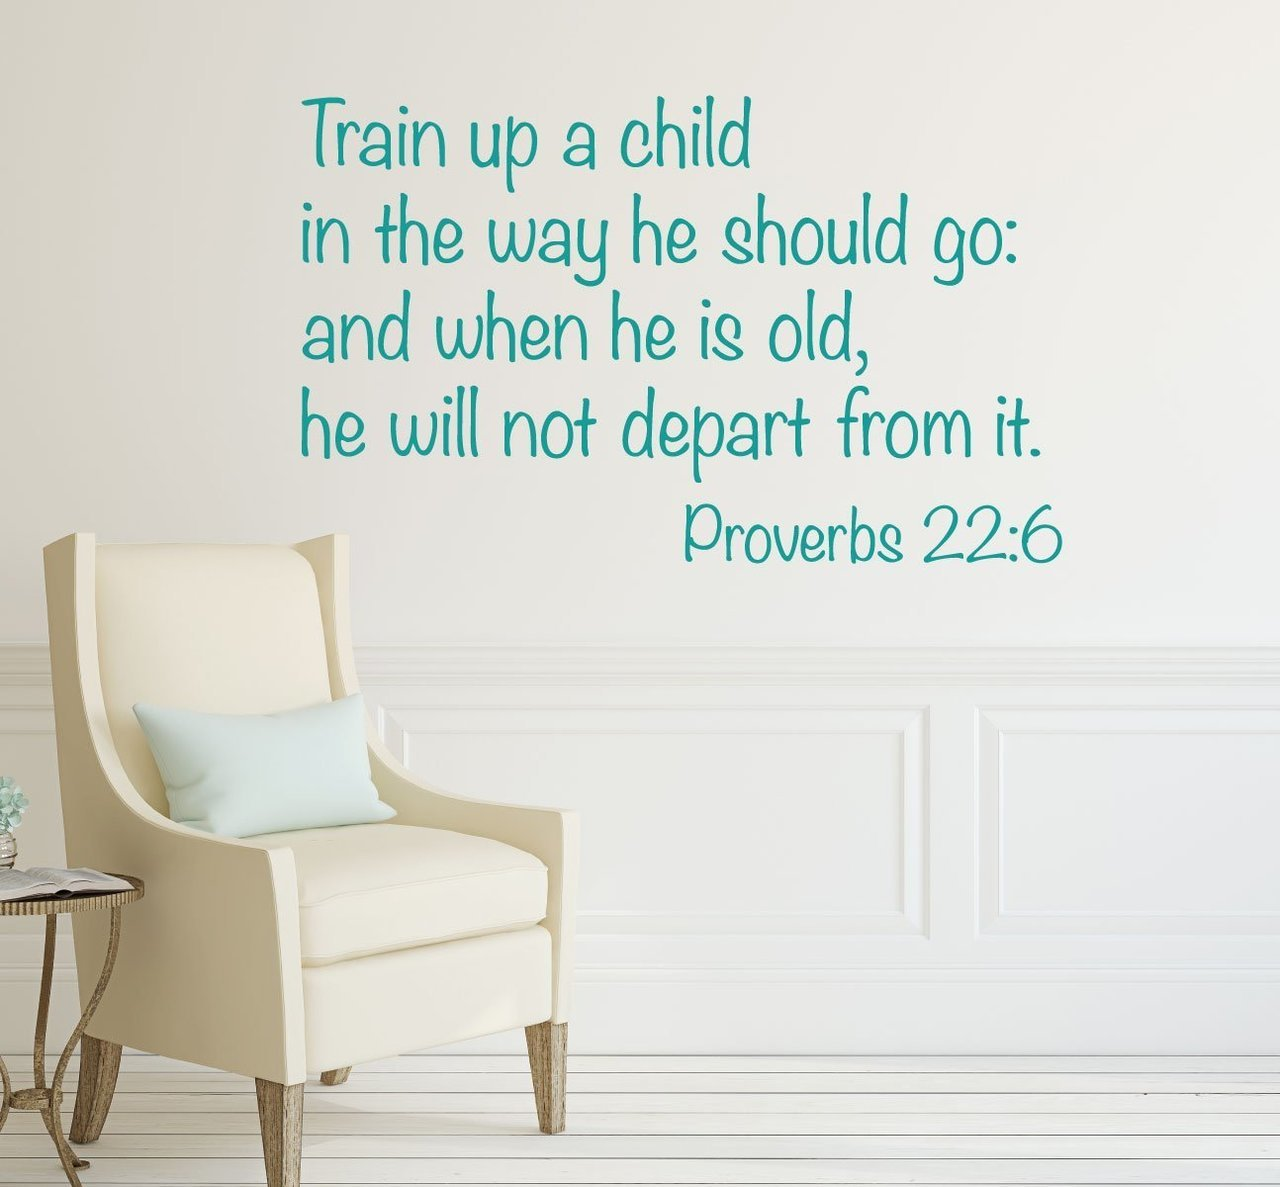 Bible Verse Wall Decals - Proverbs 22:6 - Train Up A Child - Christian Home Decor Vinyl Lettering